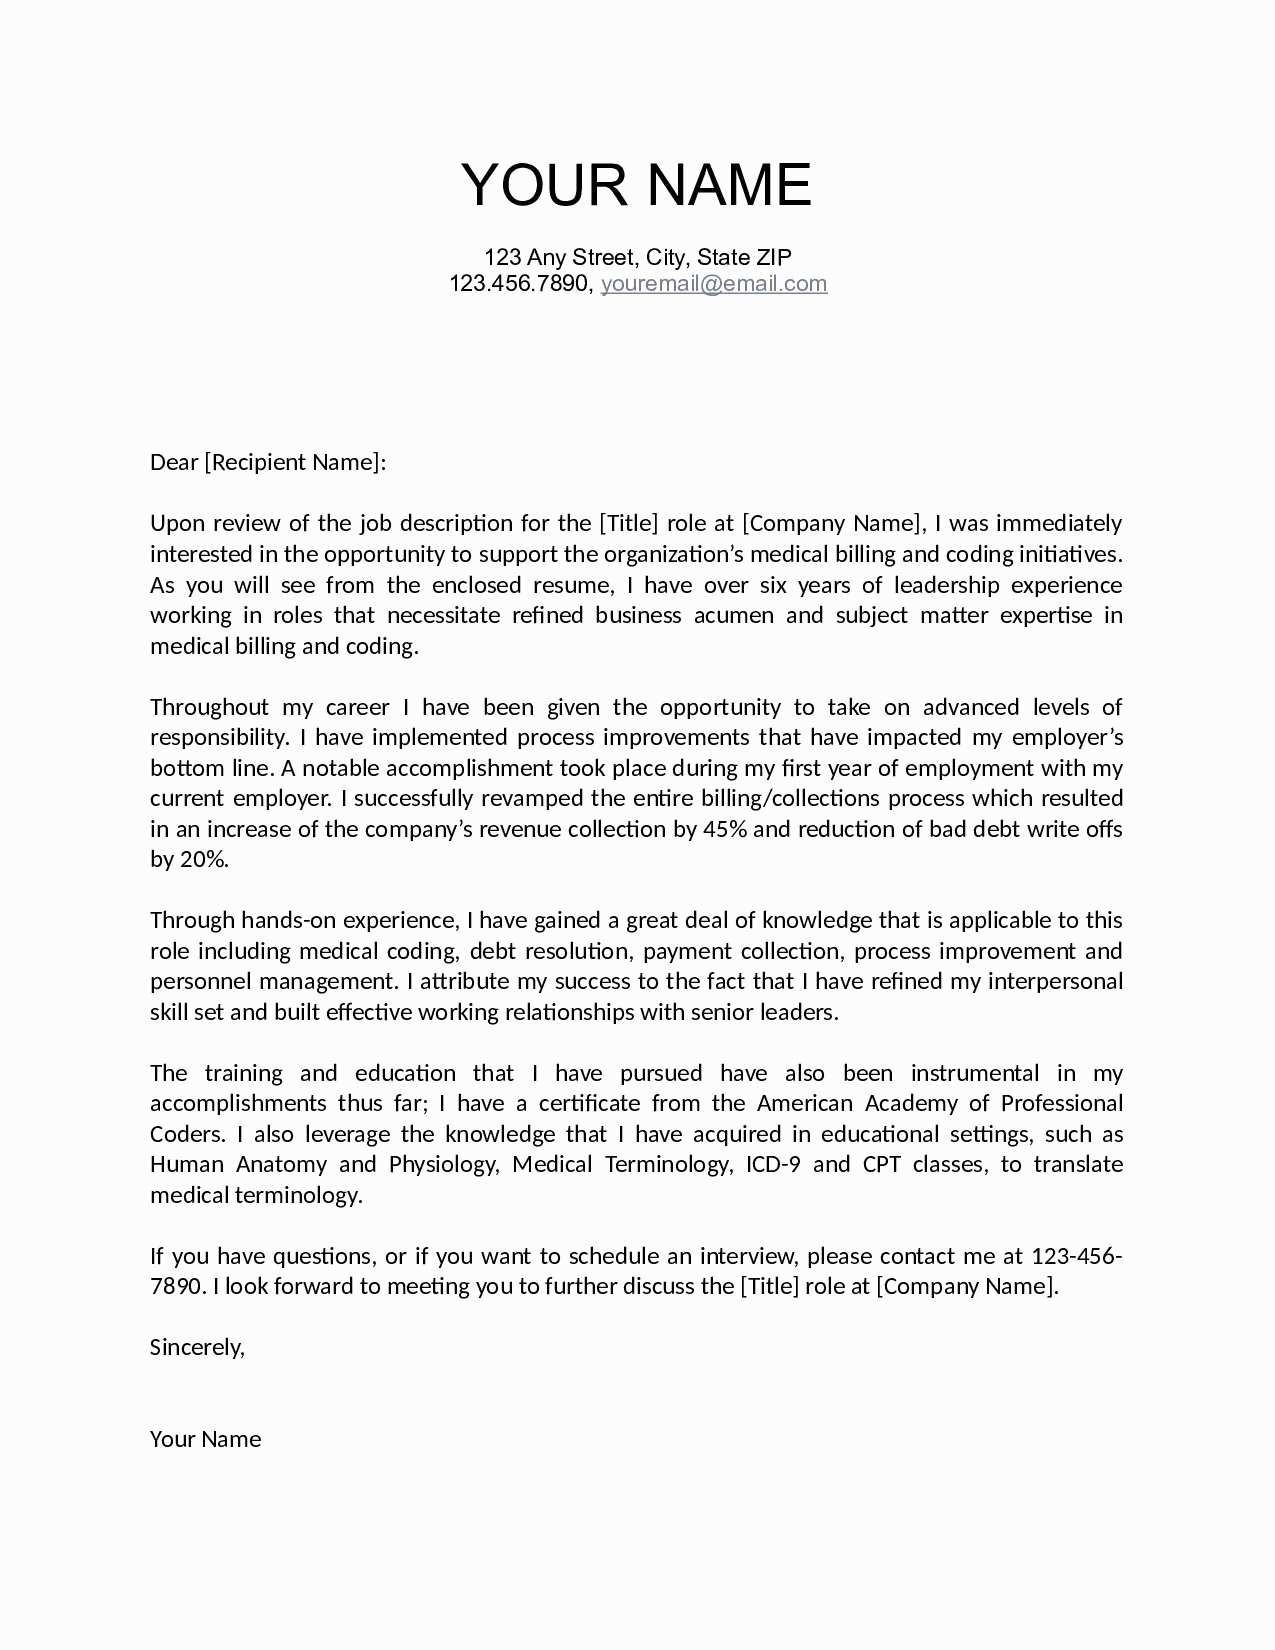 Past Due Collection Letter Template - Cover Letter for Oil and Gas Job Save Lovely Job Fer Letter Template